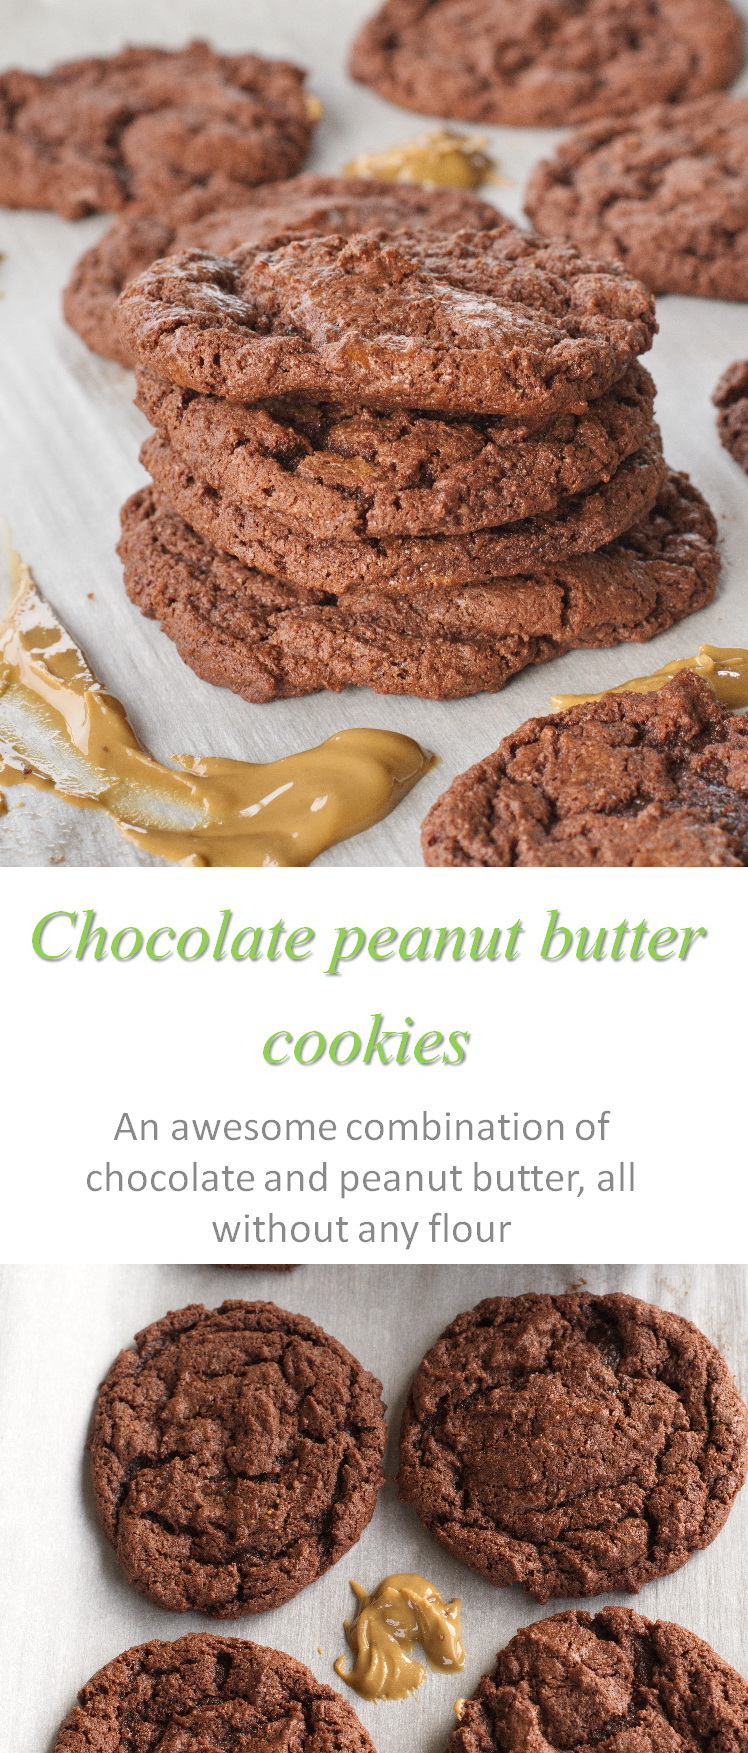 These are yummy flourless chocolate peanut butter cookies, using no gluten, no dairy but so very easy! #chocolatepeanutbutter #cookathome #glutenfree #dairyfree